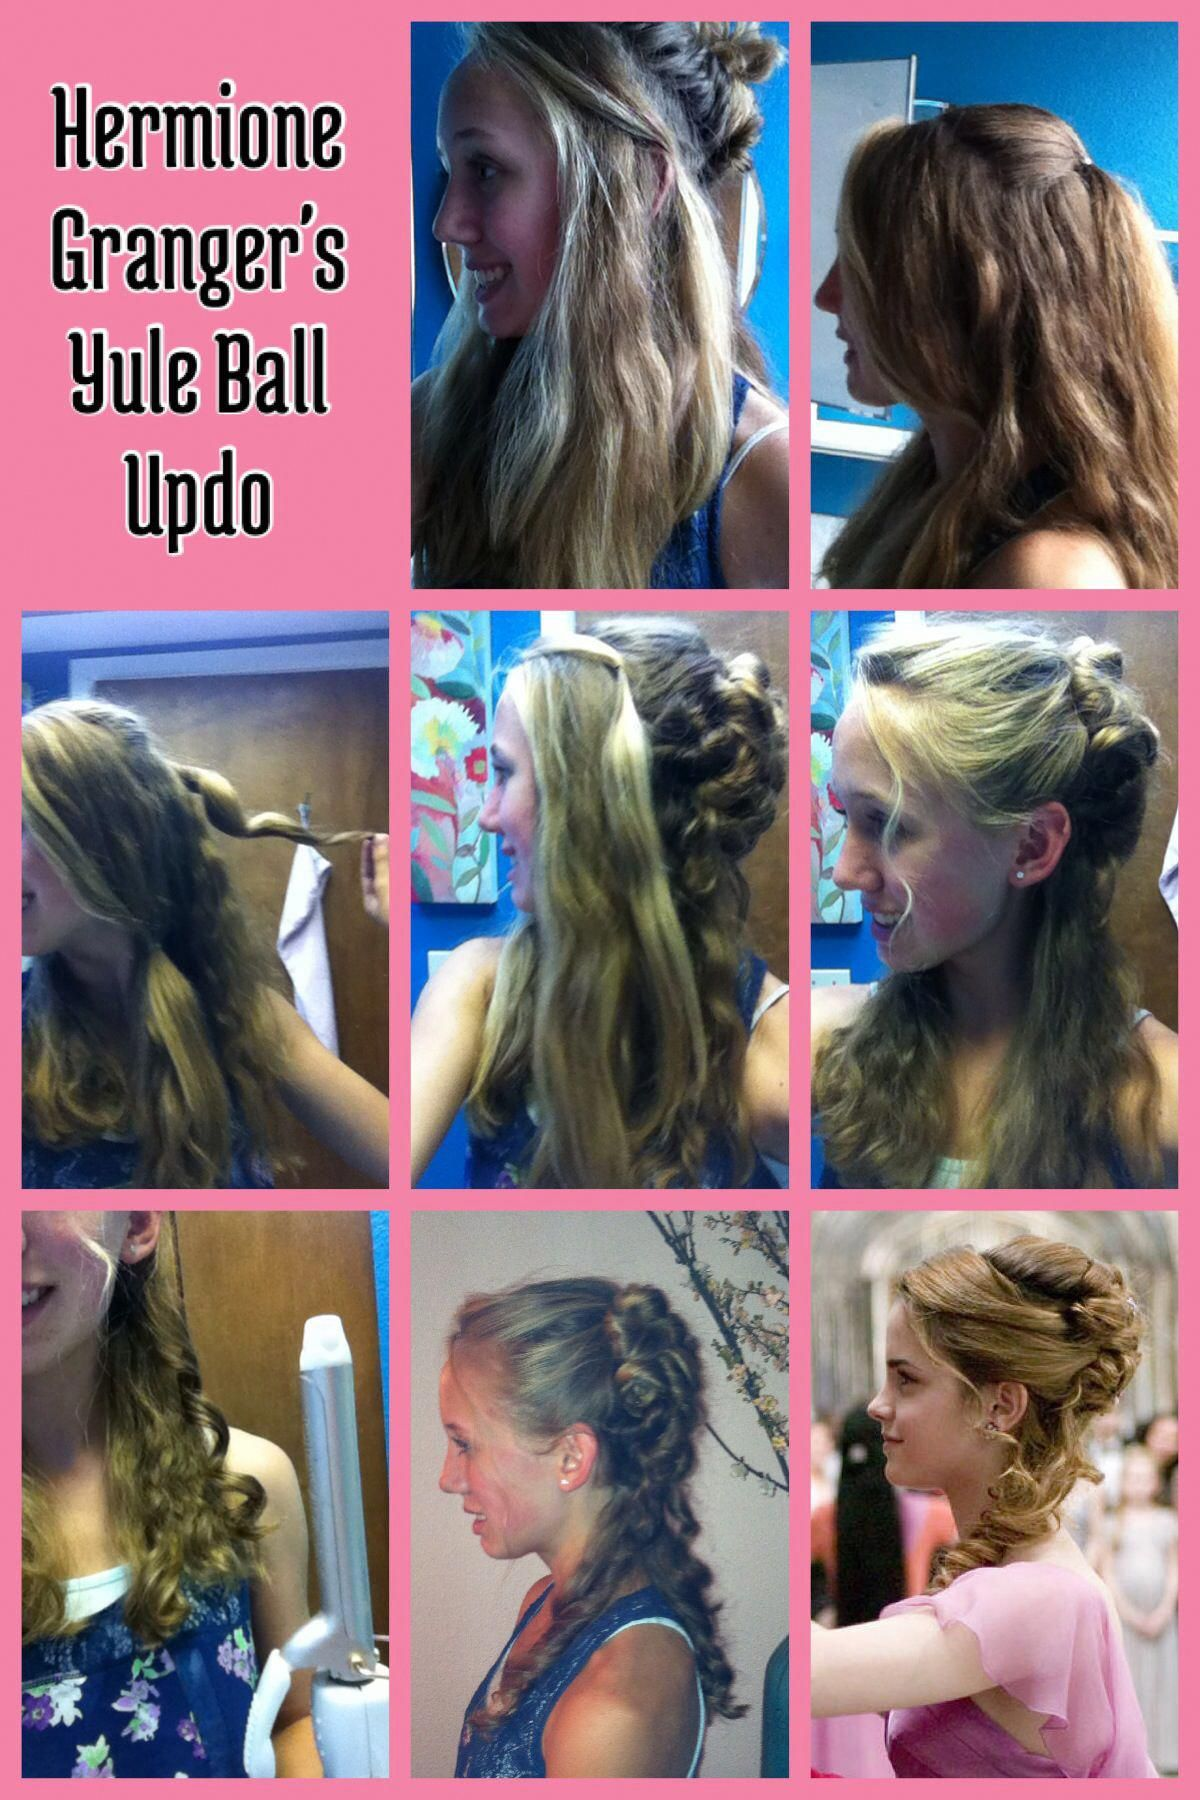 Hermione Granger S Yule Ball Updo 1 Section Off Hair Behind Your Ears Leave Promhairstylesalldown Ball Hairstyles Hermione Granger Hair Hermione Hair